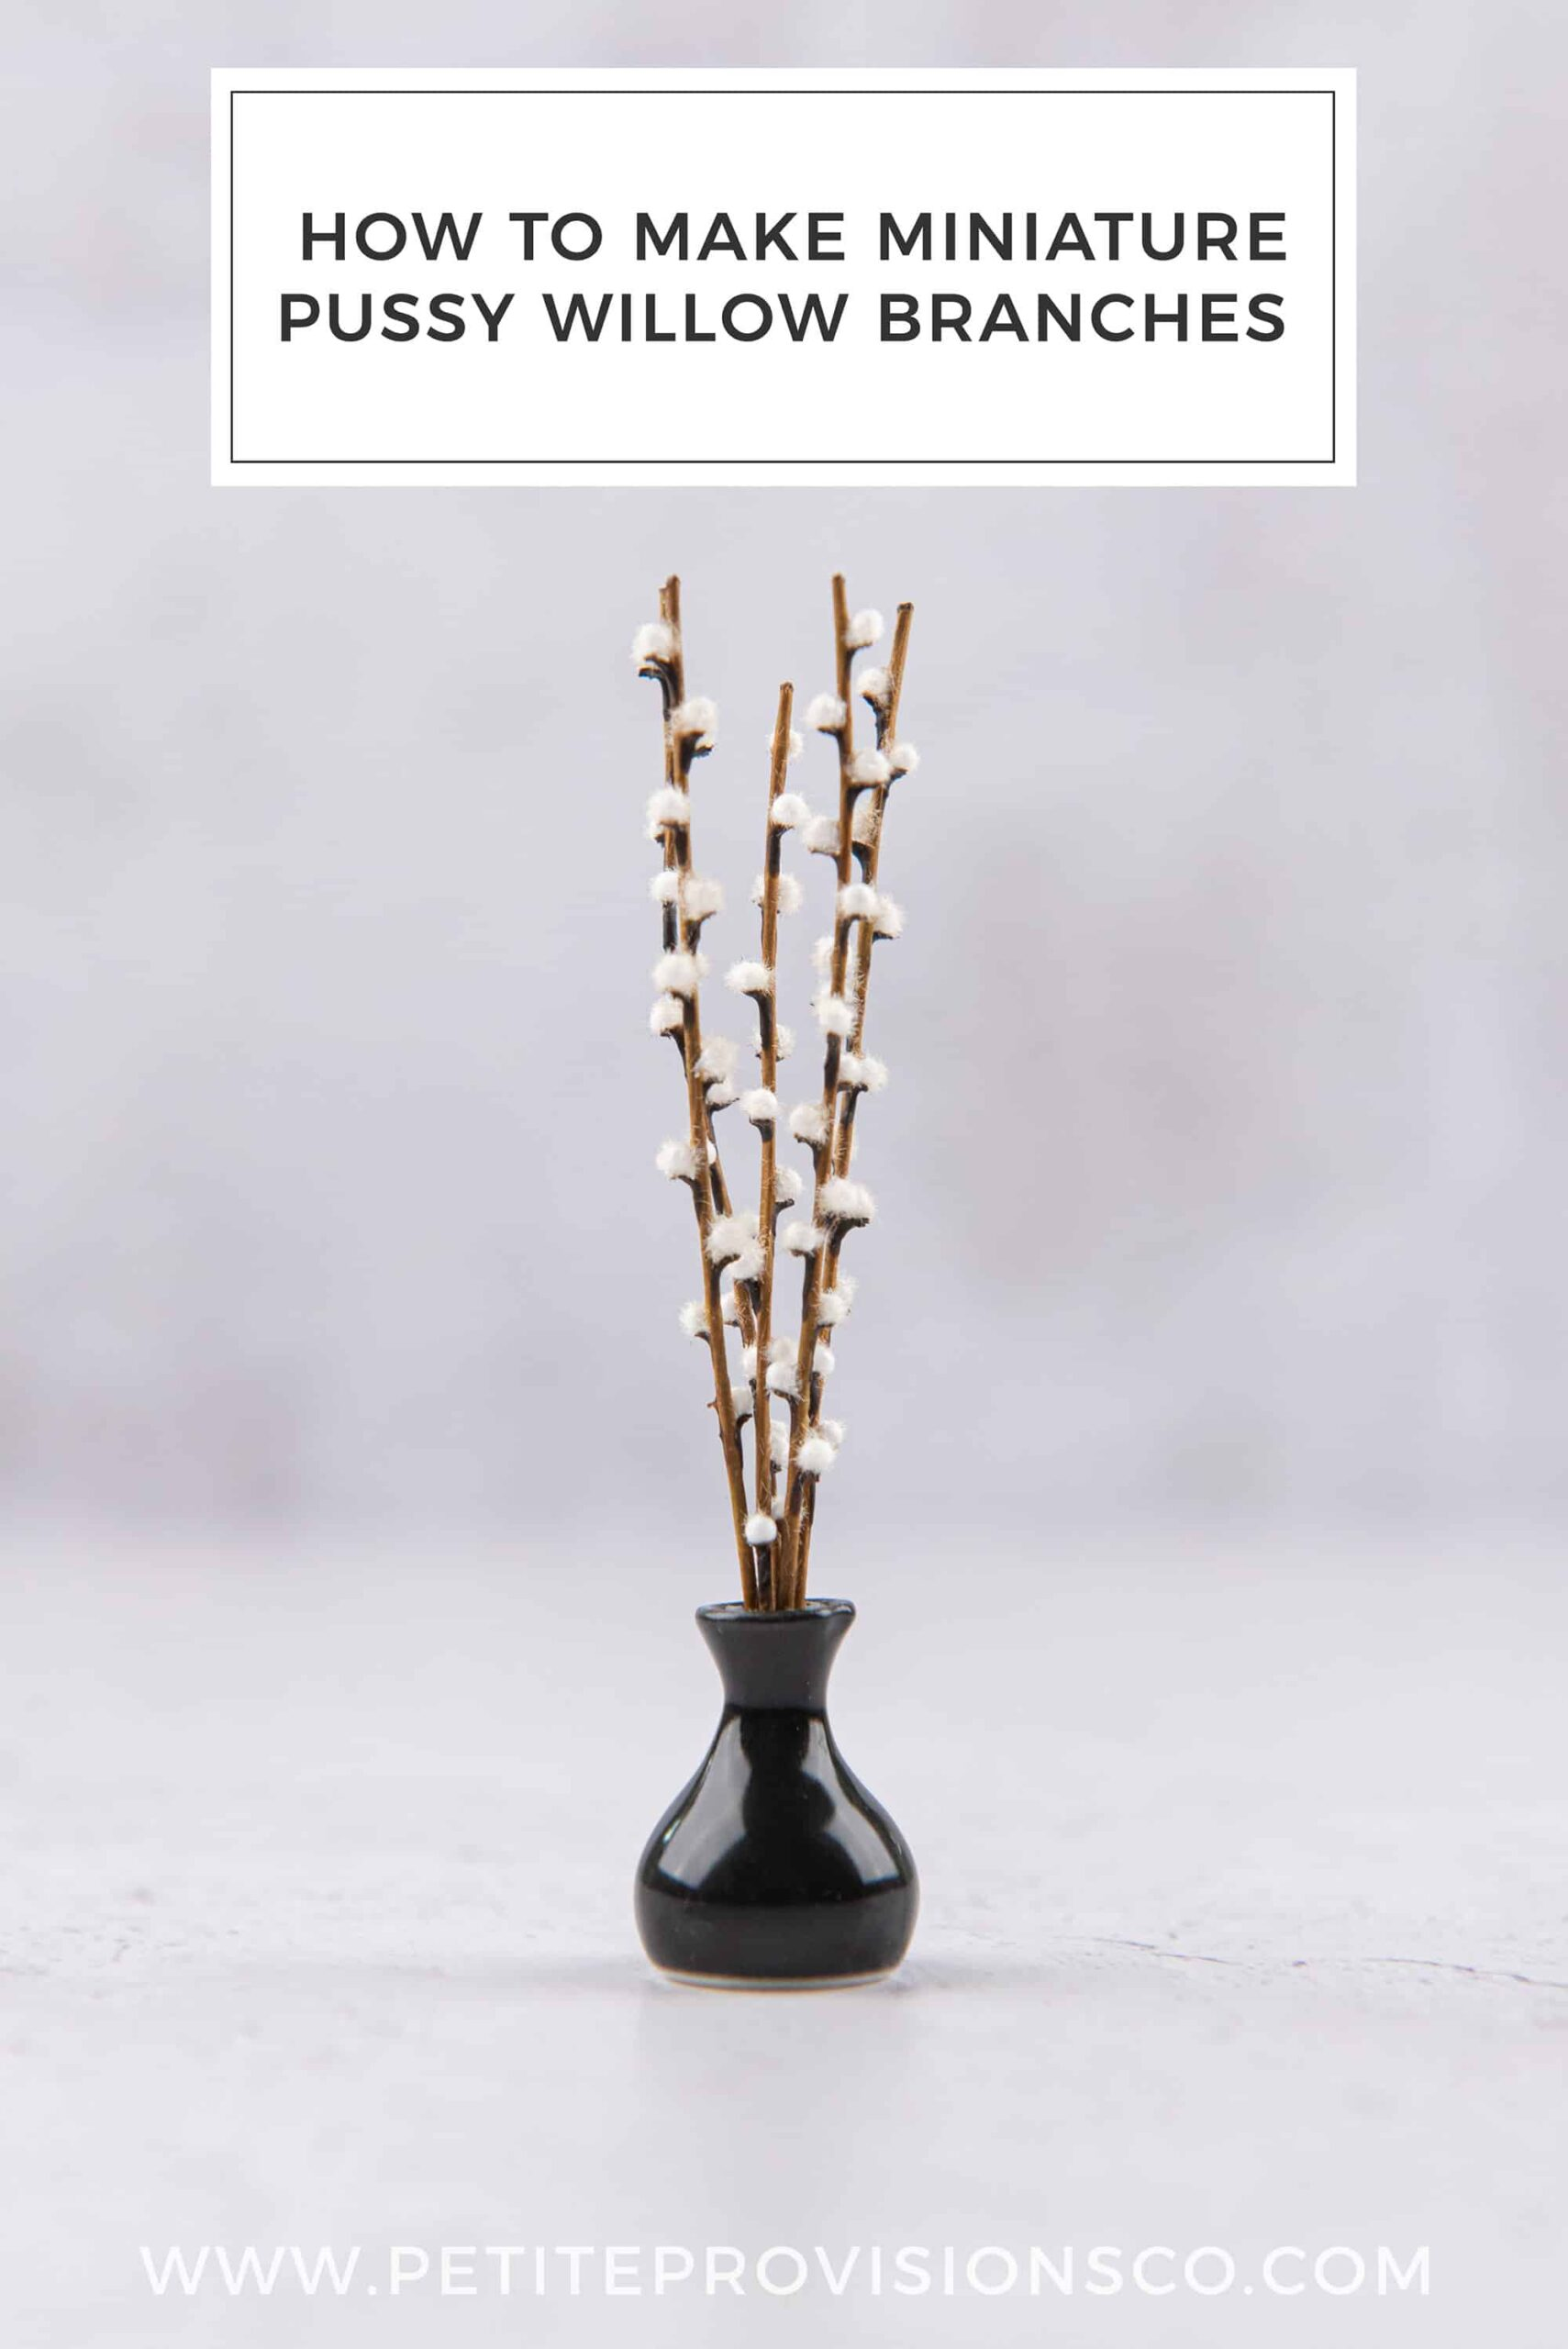 How to Make Miniature Pussy Willow Branches